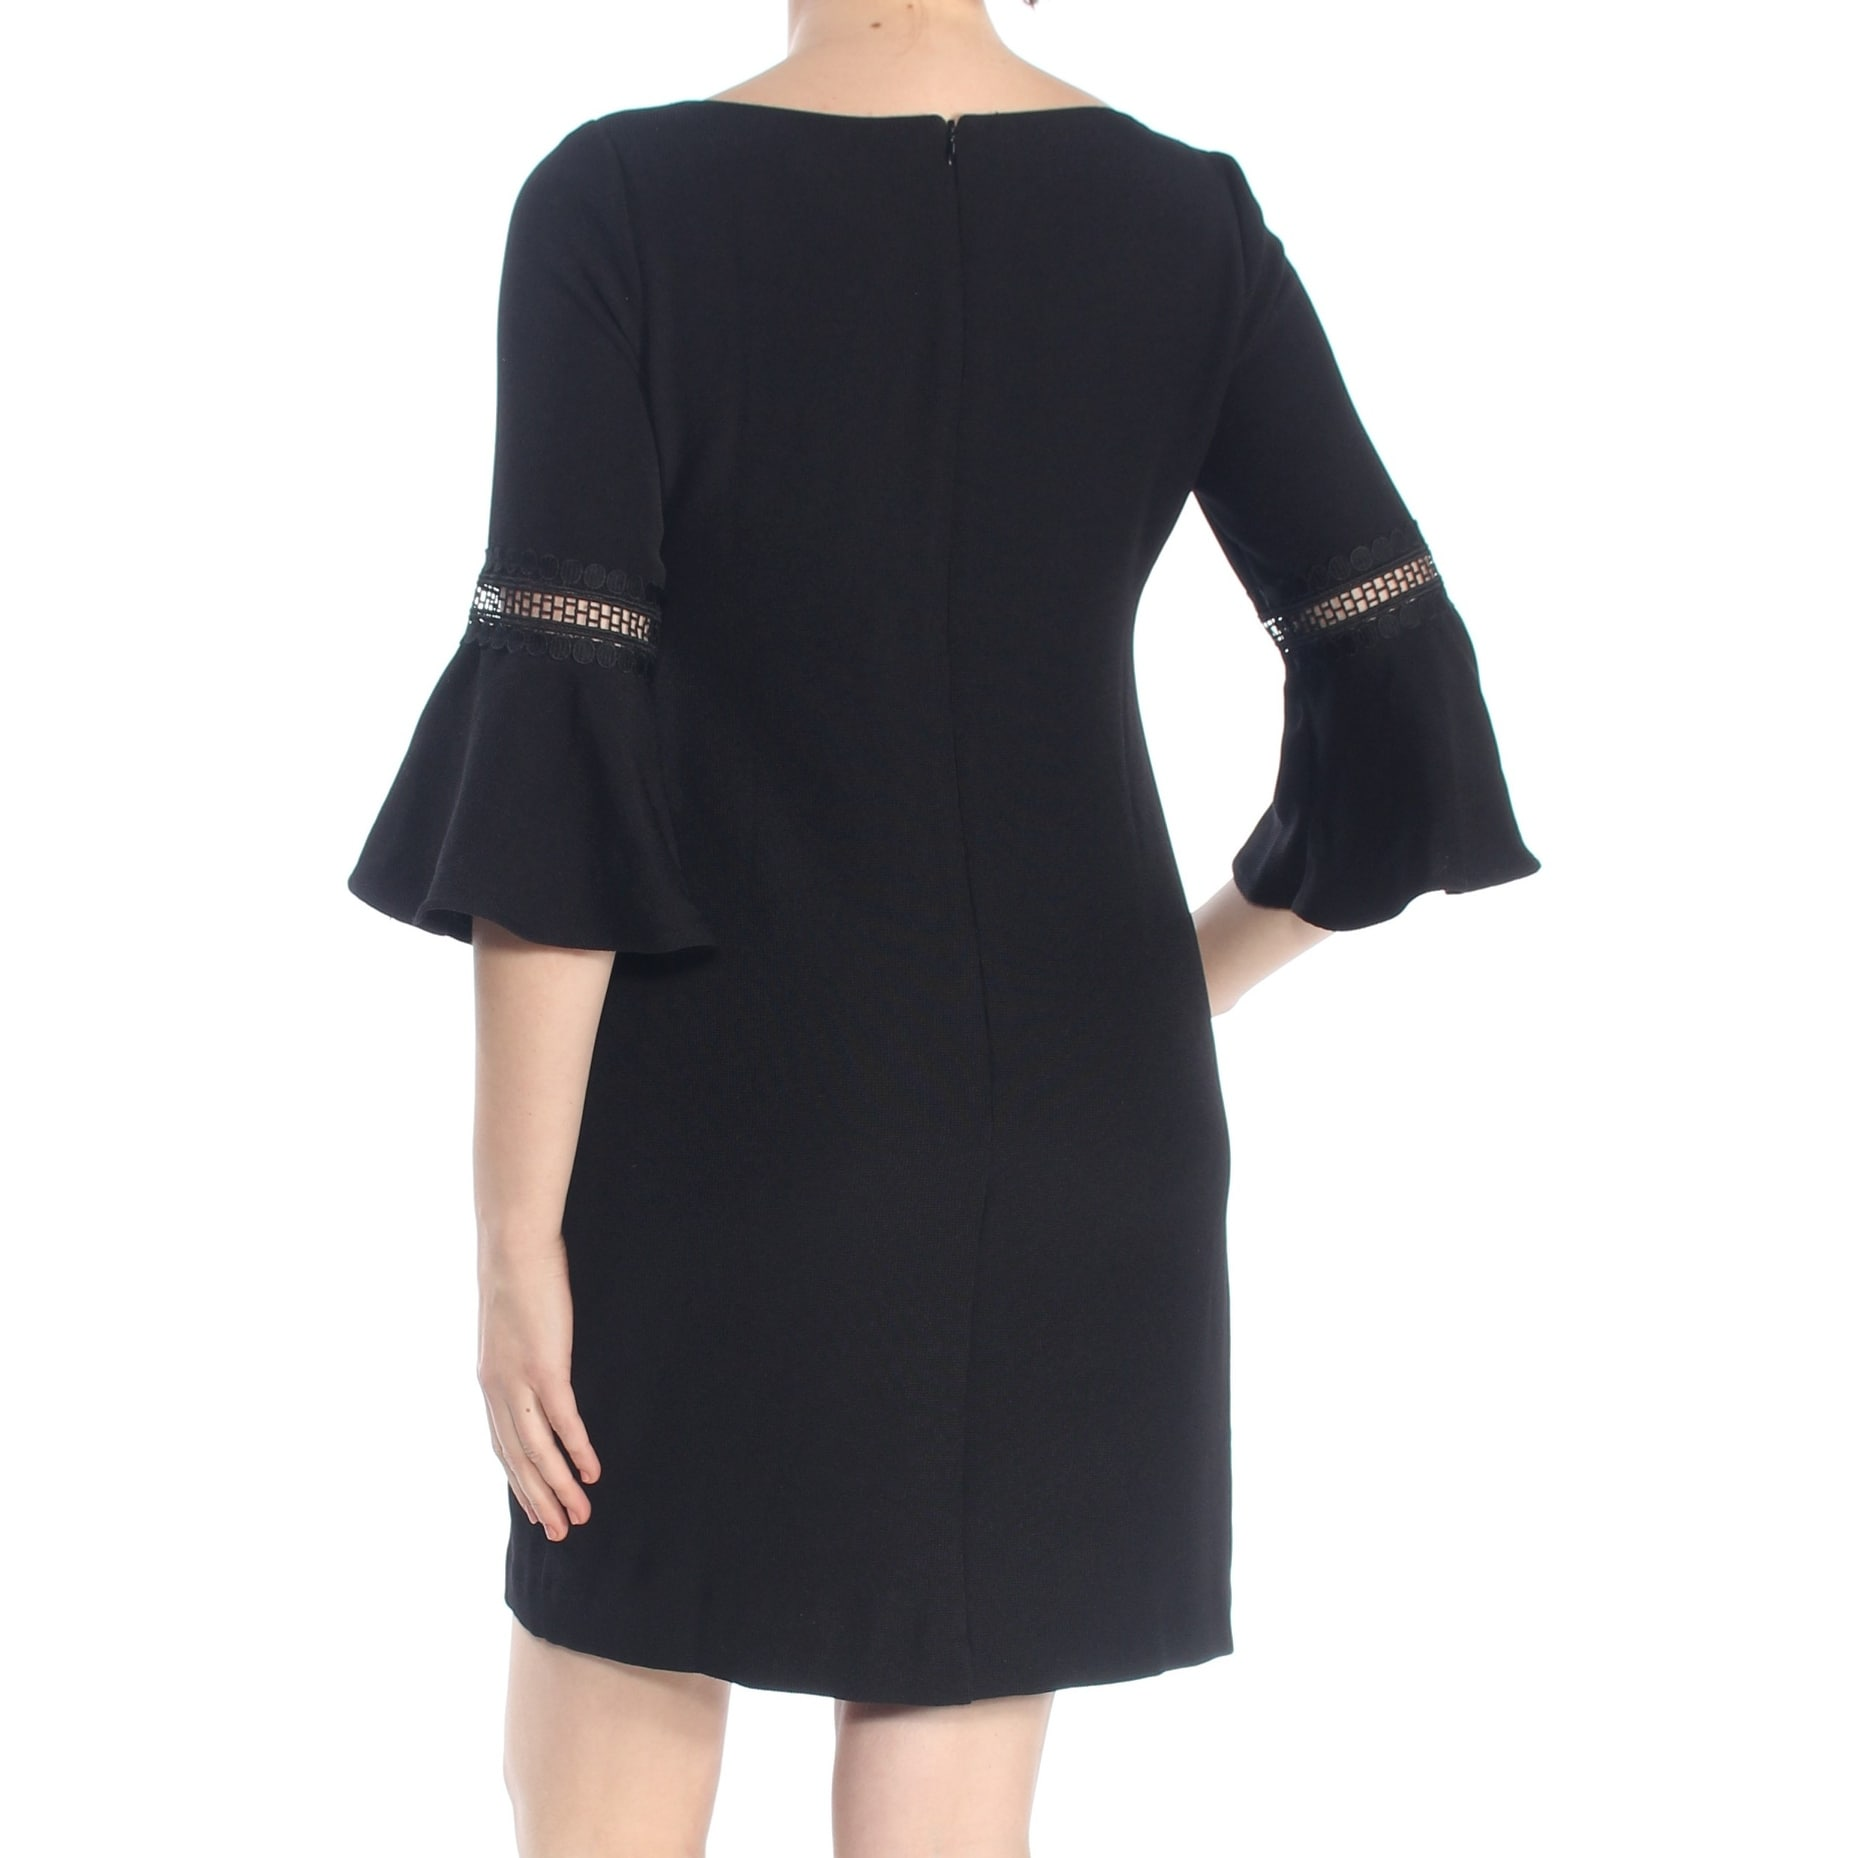 061261f15d45 Shop JESSICA HOWARD Womens Black Eyelet Bell Sleeve Boat Neck Mini Shift  Cocktail Dress Petites Size: 8 - Free Shipping On Orders Over $45 -  Overstock - ...